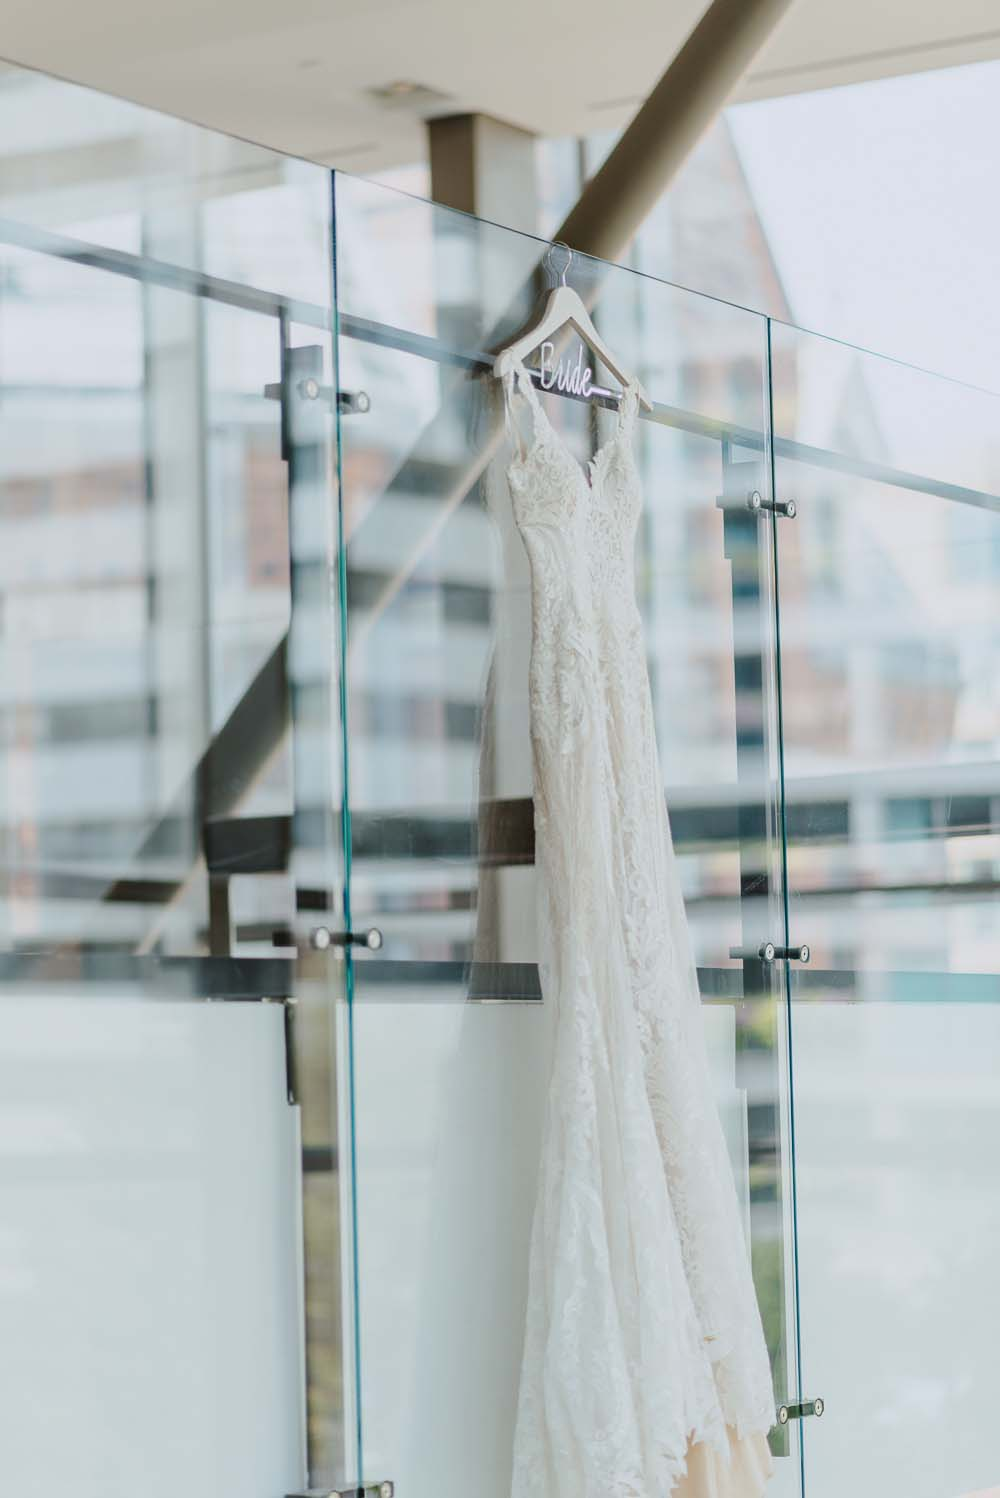 An Opulent Wedding At The Royal Conservatory Of Music - Gown